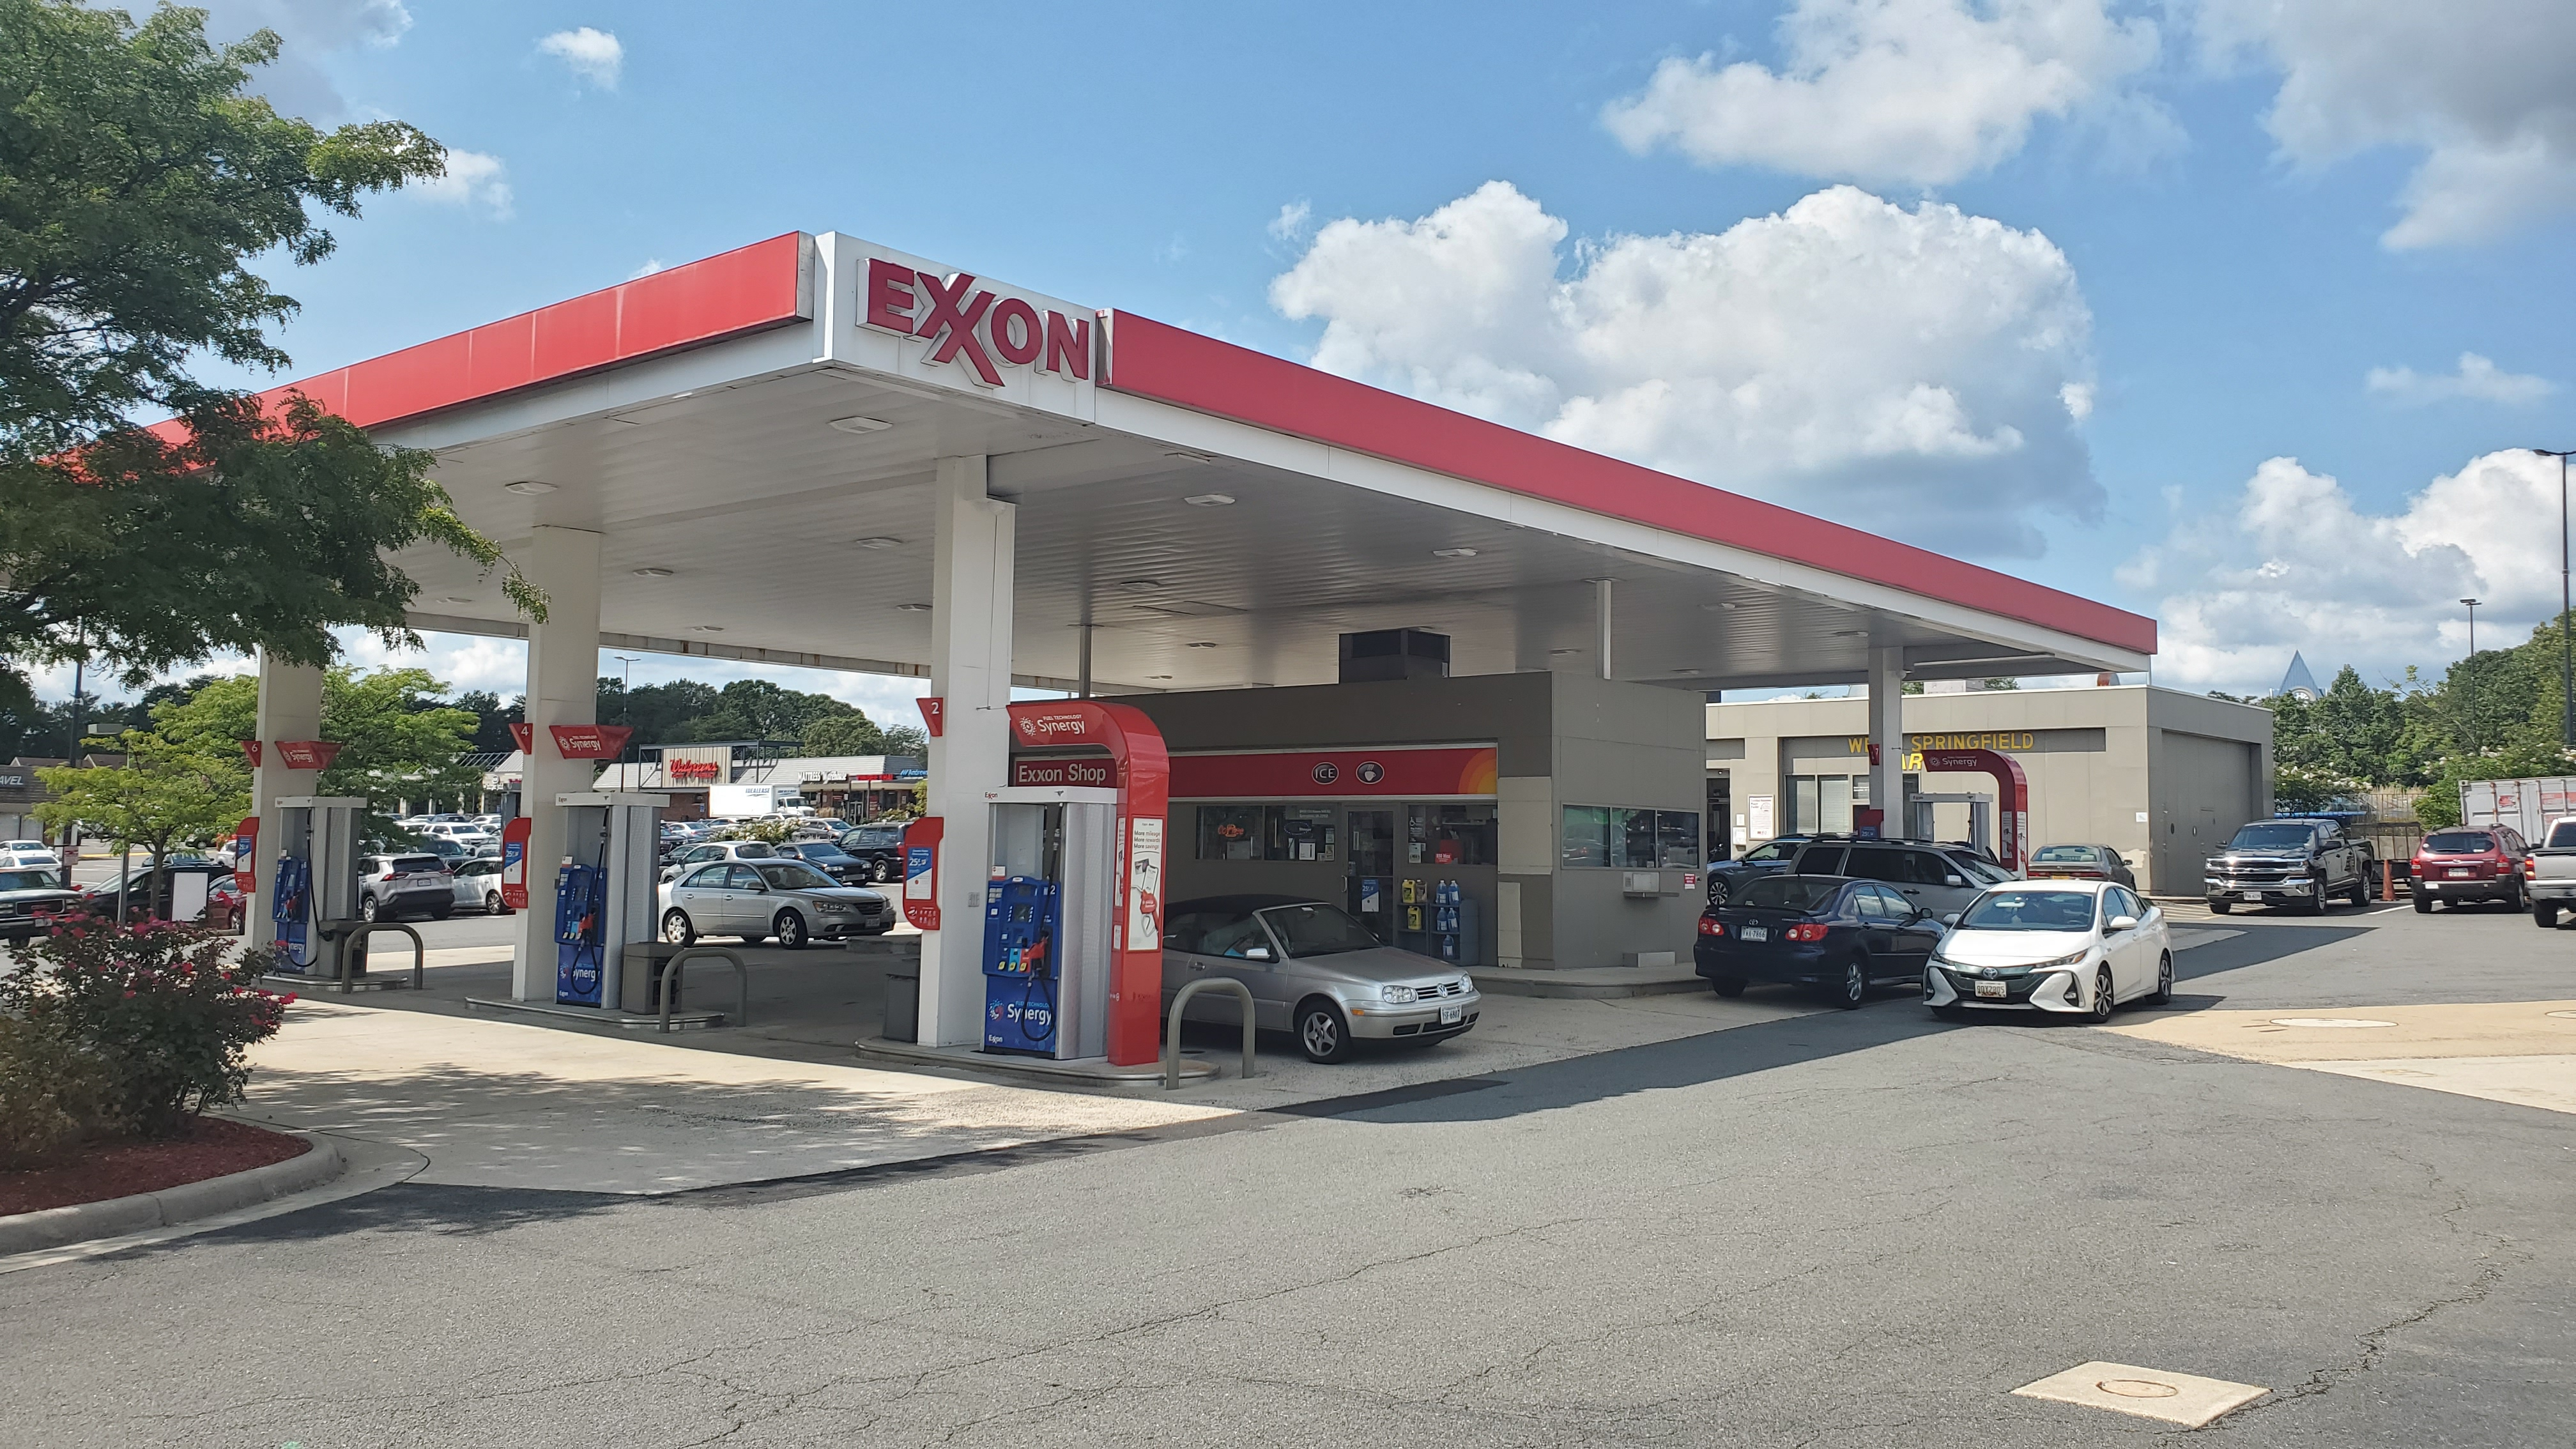 Bitcoin ATM inside Exxon Gas